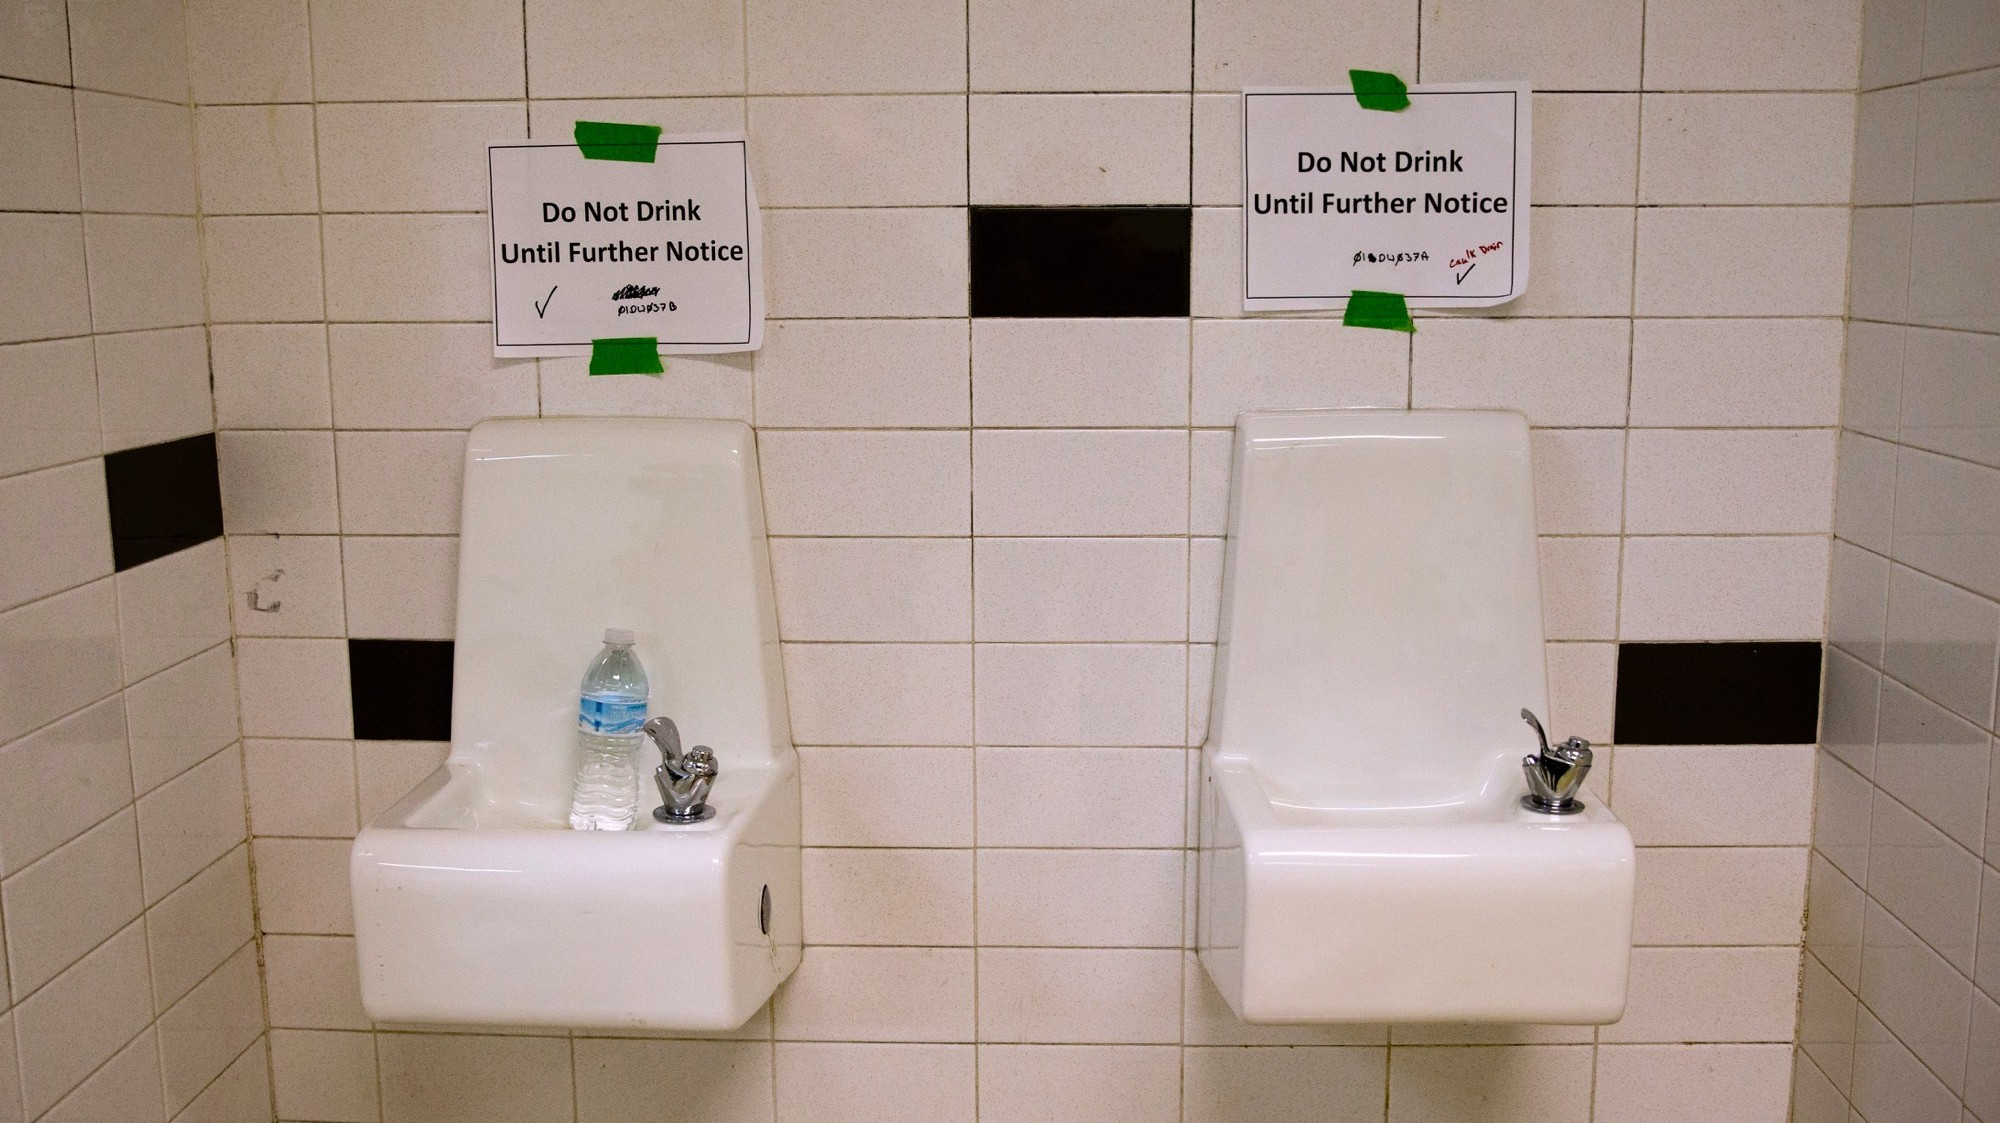 Portland School District Let Kids Drink Lead-Contaminated Water After It Tested Positive